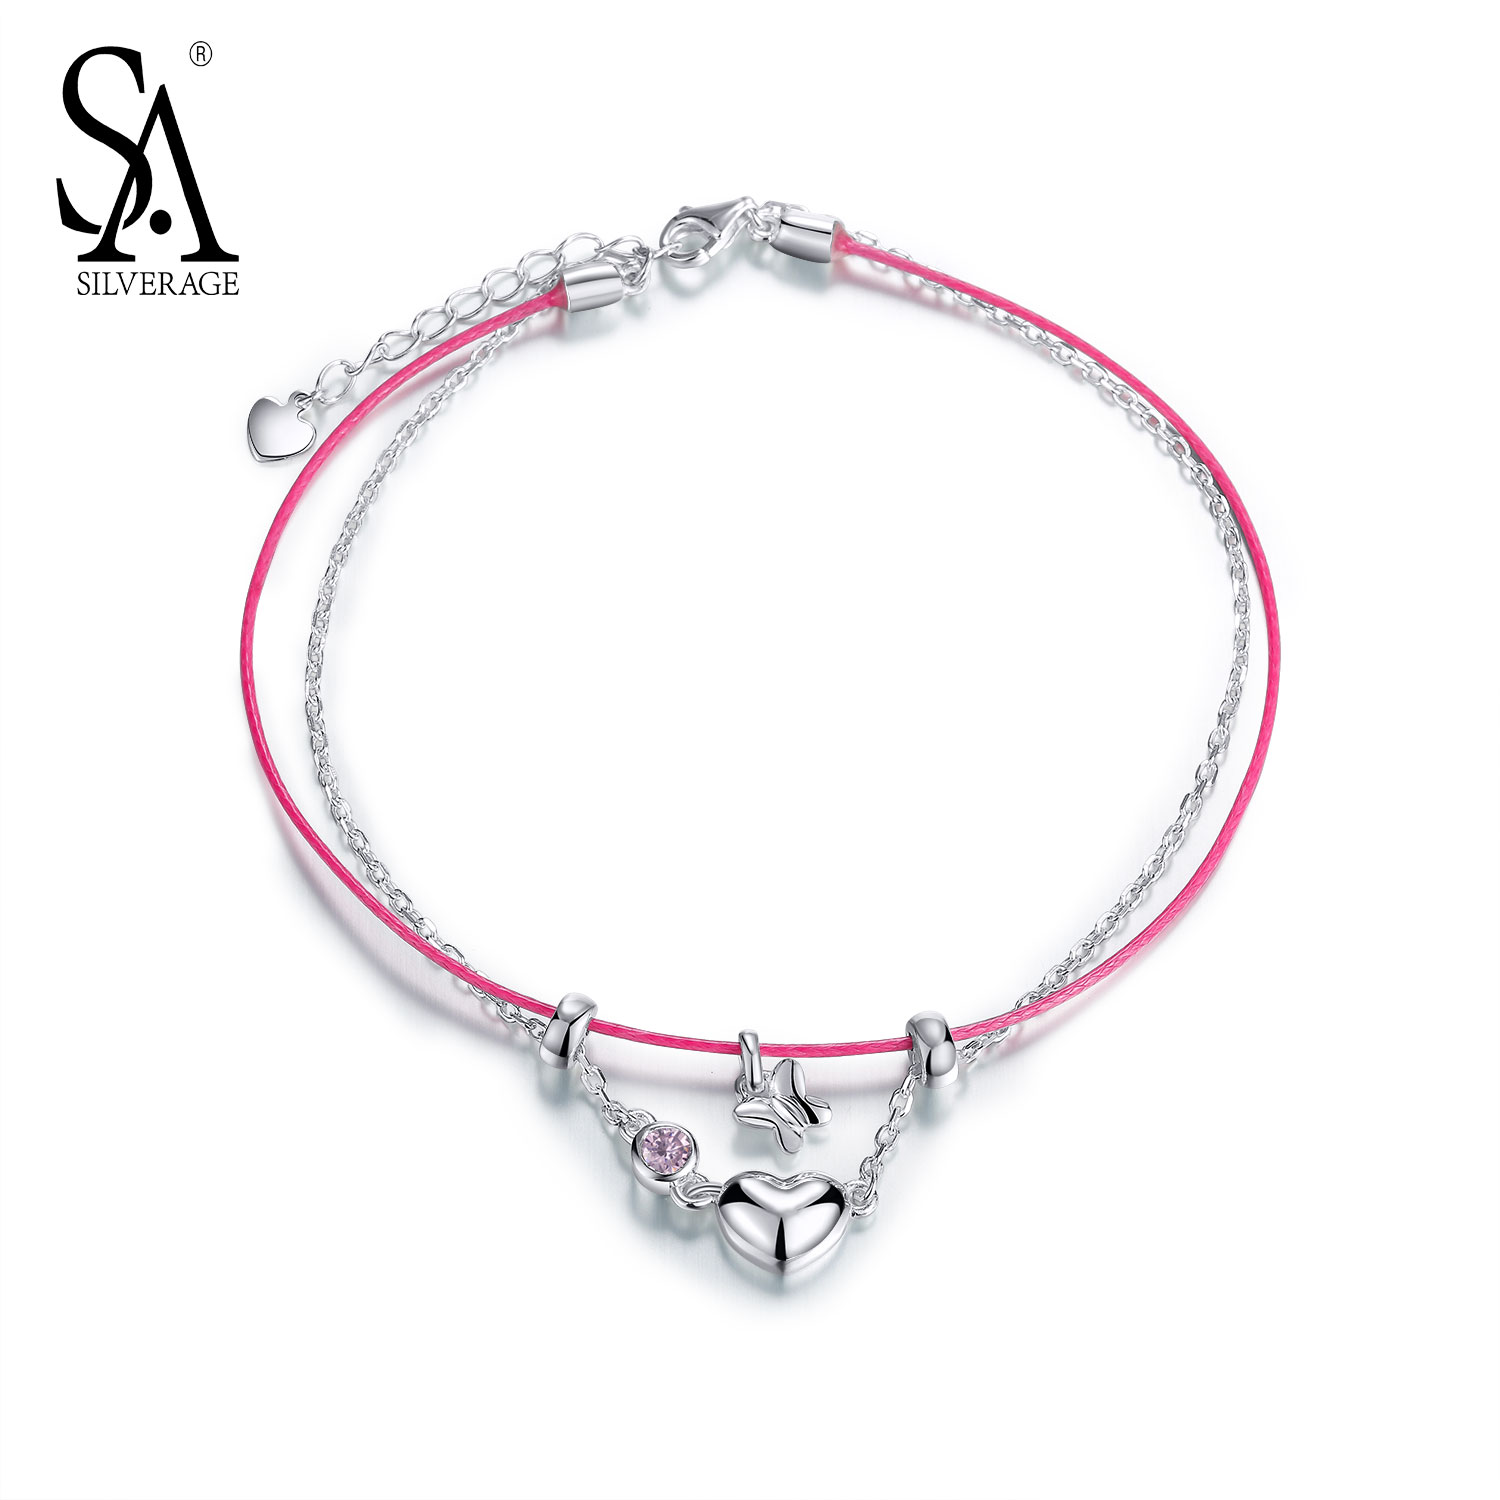 SA SILVERAGE Real 925 Sterling Silver font b Anklets b font for Women Fine font b